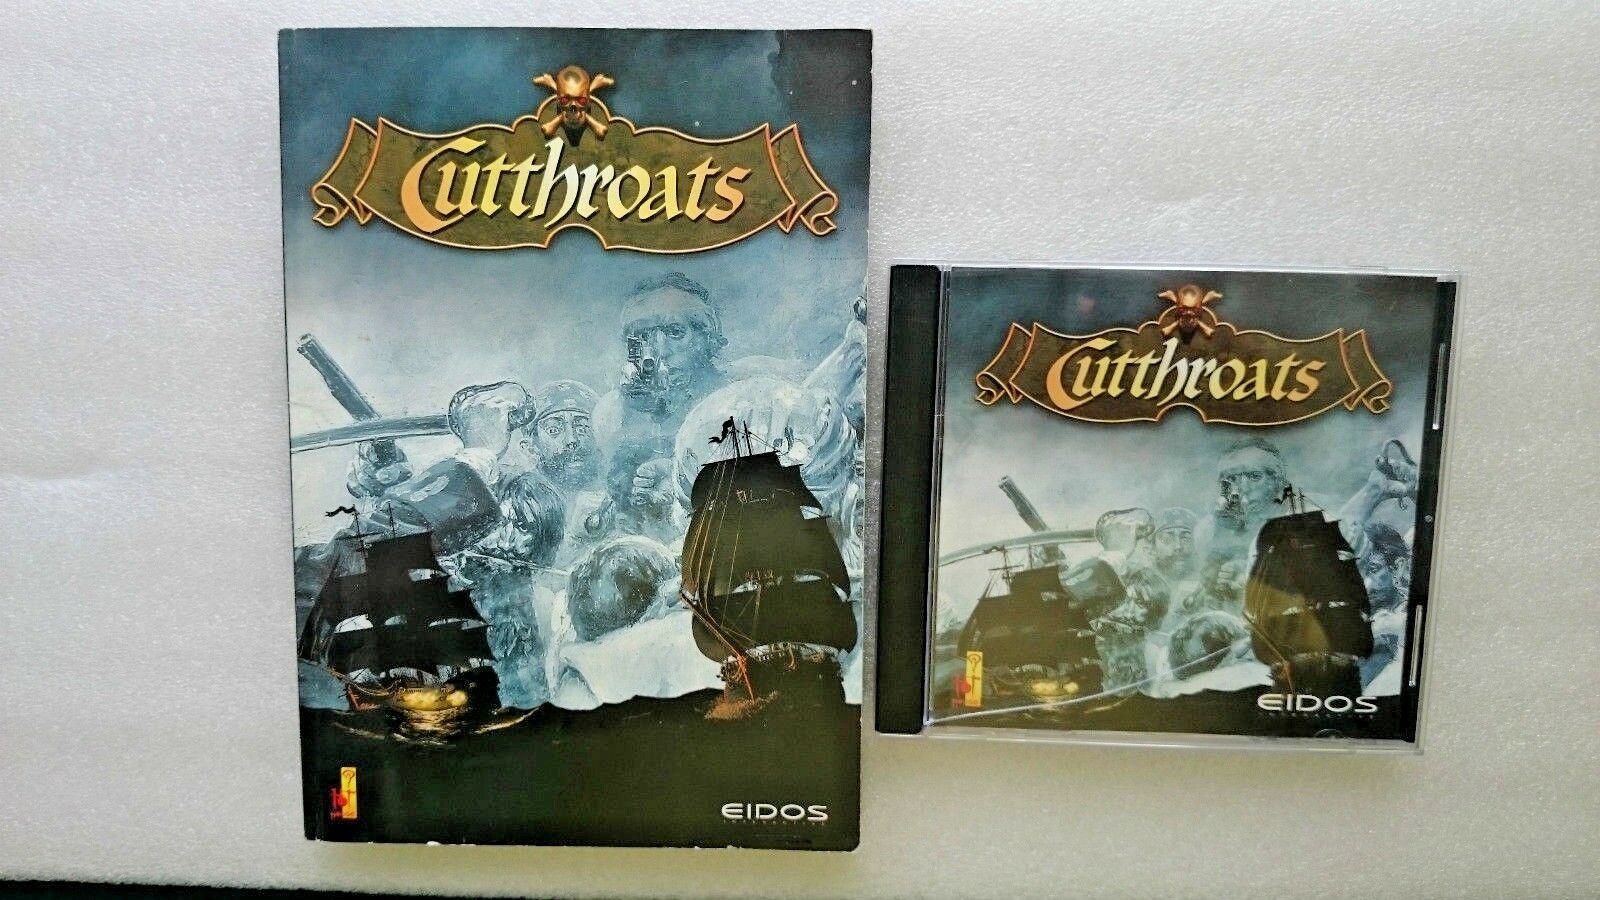 Cutthroats  Classic Pirate PC Big Box Edition